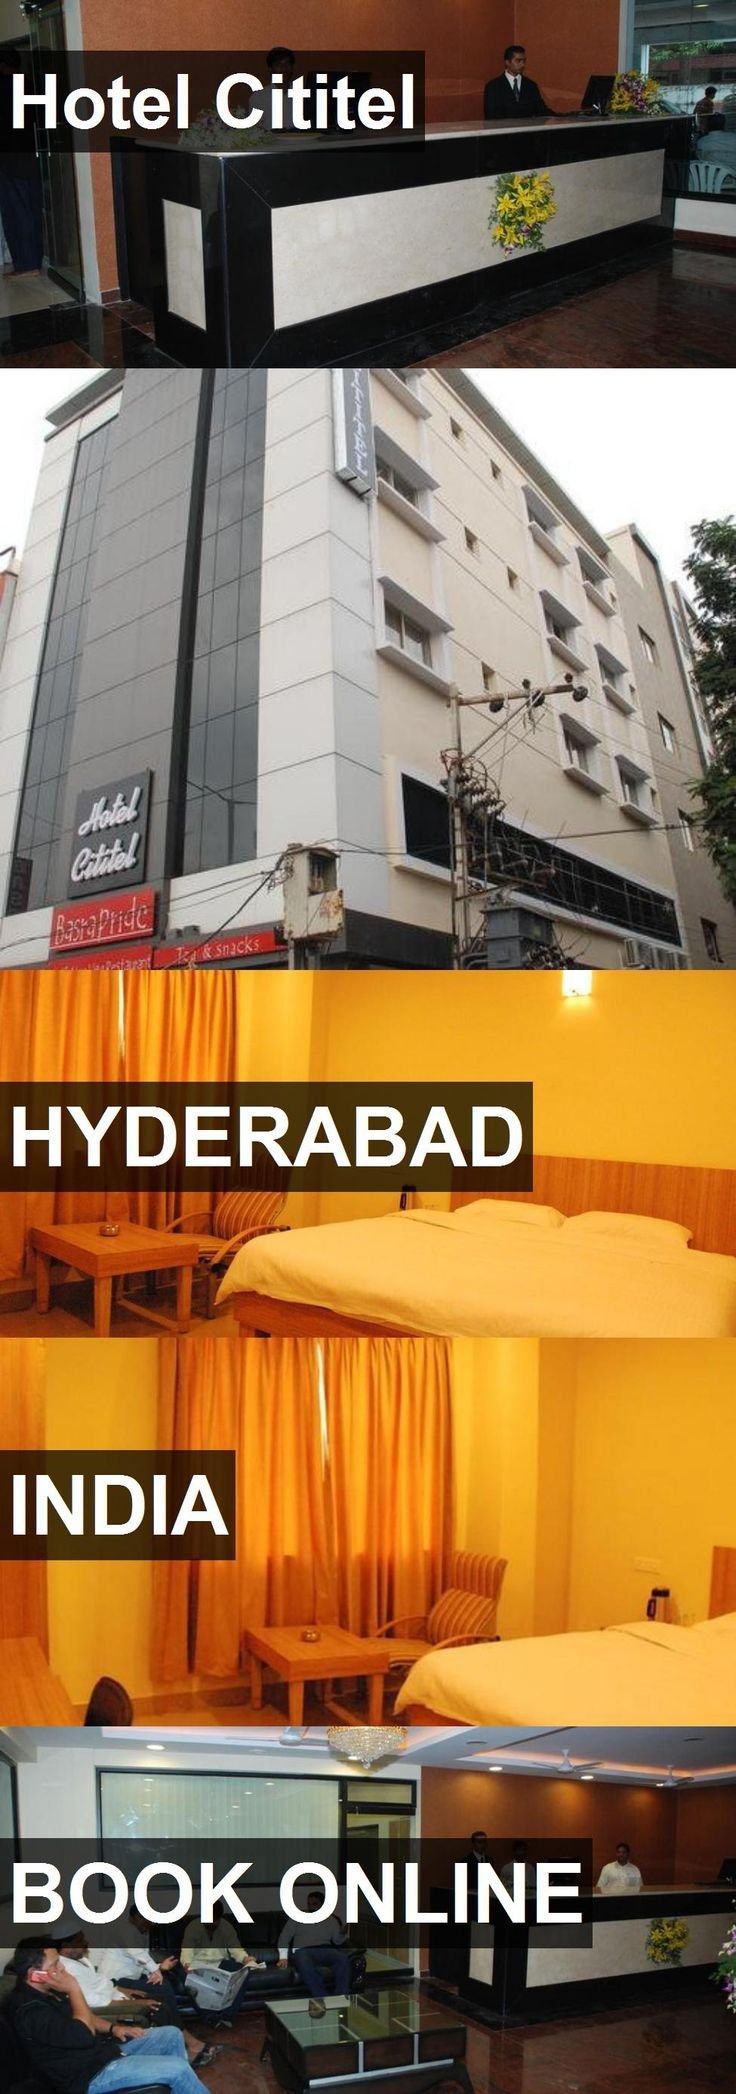 Hotel Cititel in Hyderabad, India. For more information, photos, reviews and best prices please follow the link. #India #Hyderabad #travel #vacation #hotel